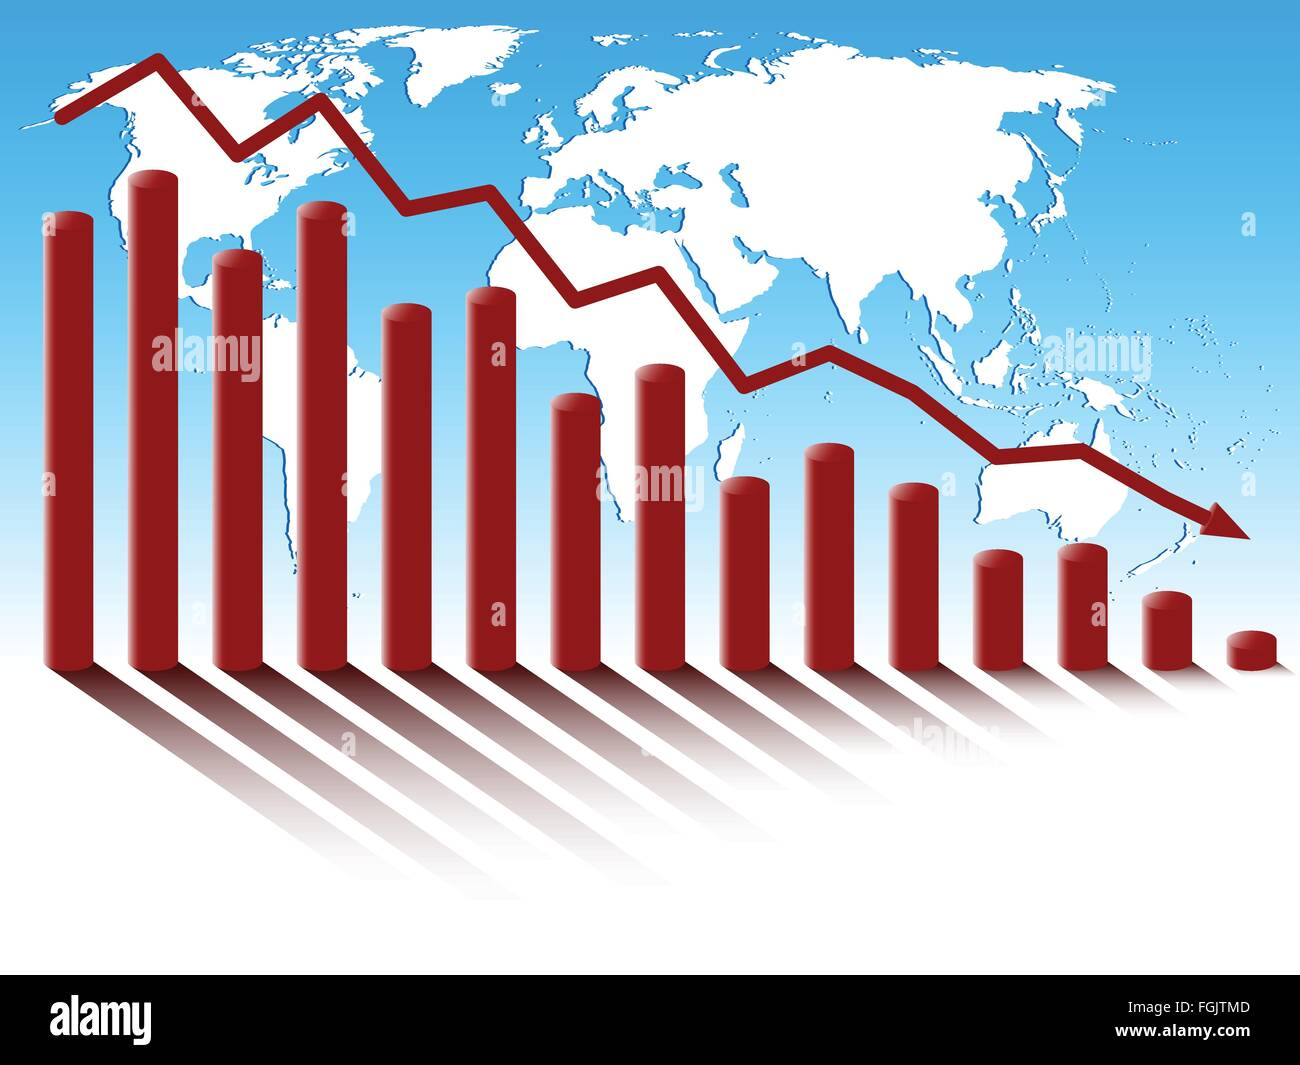 Business diagram of decrease on the background of world map. - Stock Vector